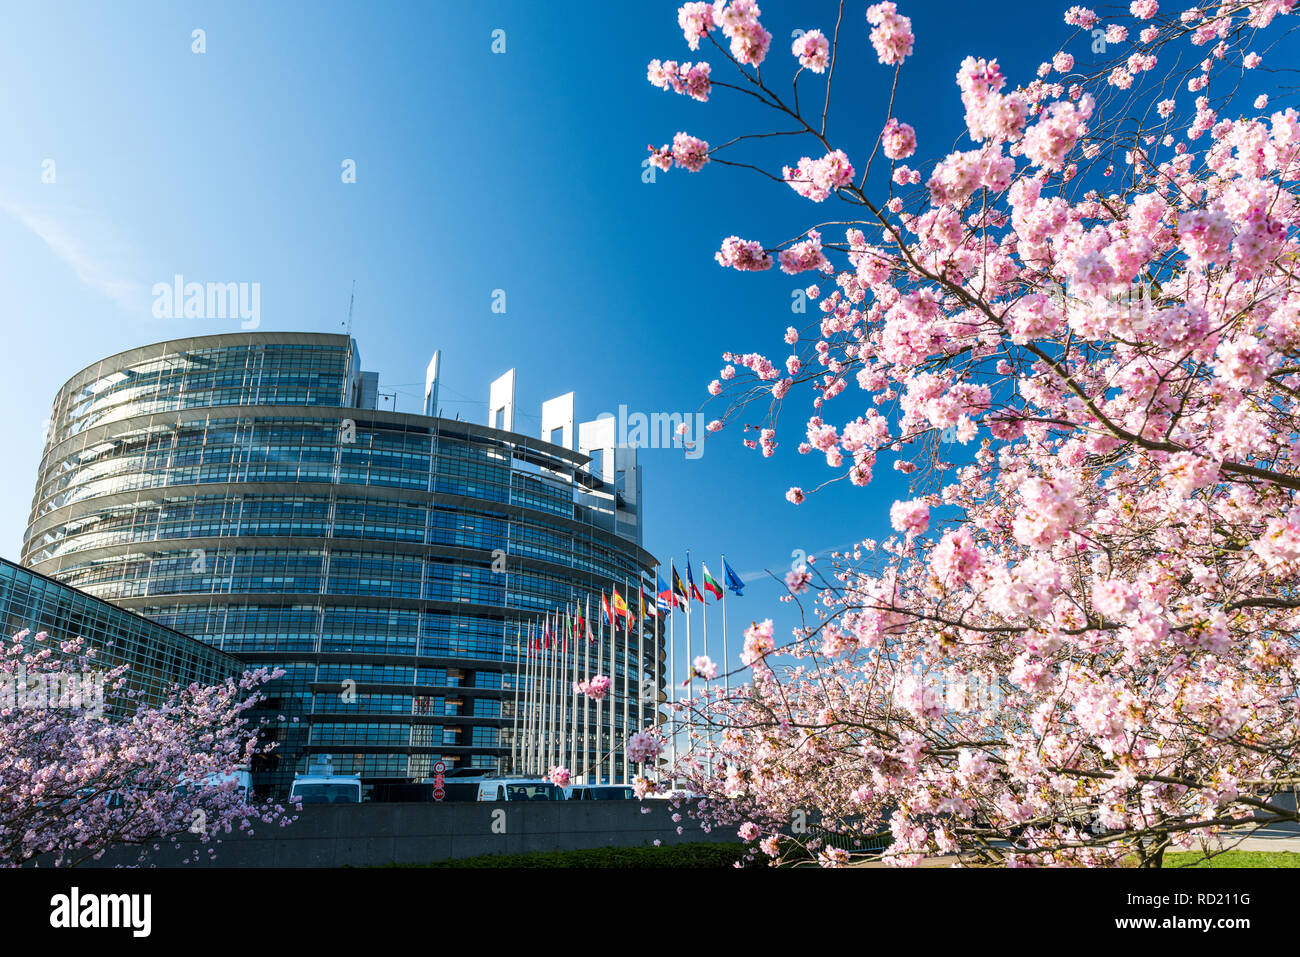 STRASBOURG, FRANCE - APRIL 6, 2018: European Parliament building with cherry tree in bloom sakura flowers on a warm spring morning with all European union flags waving - Stock Image